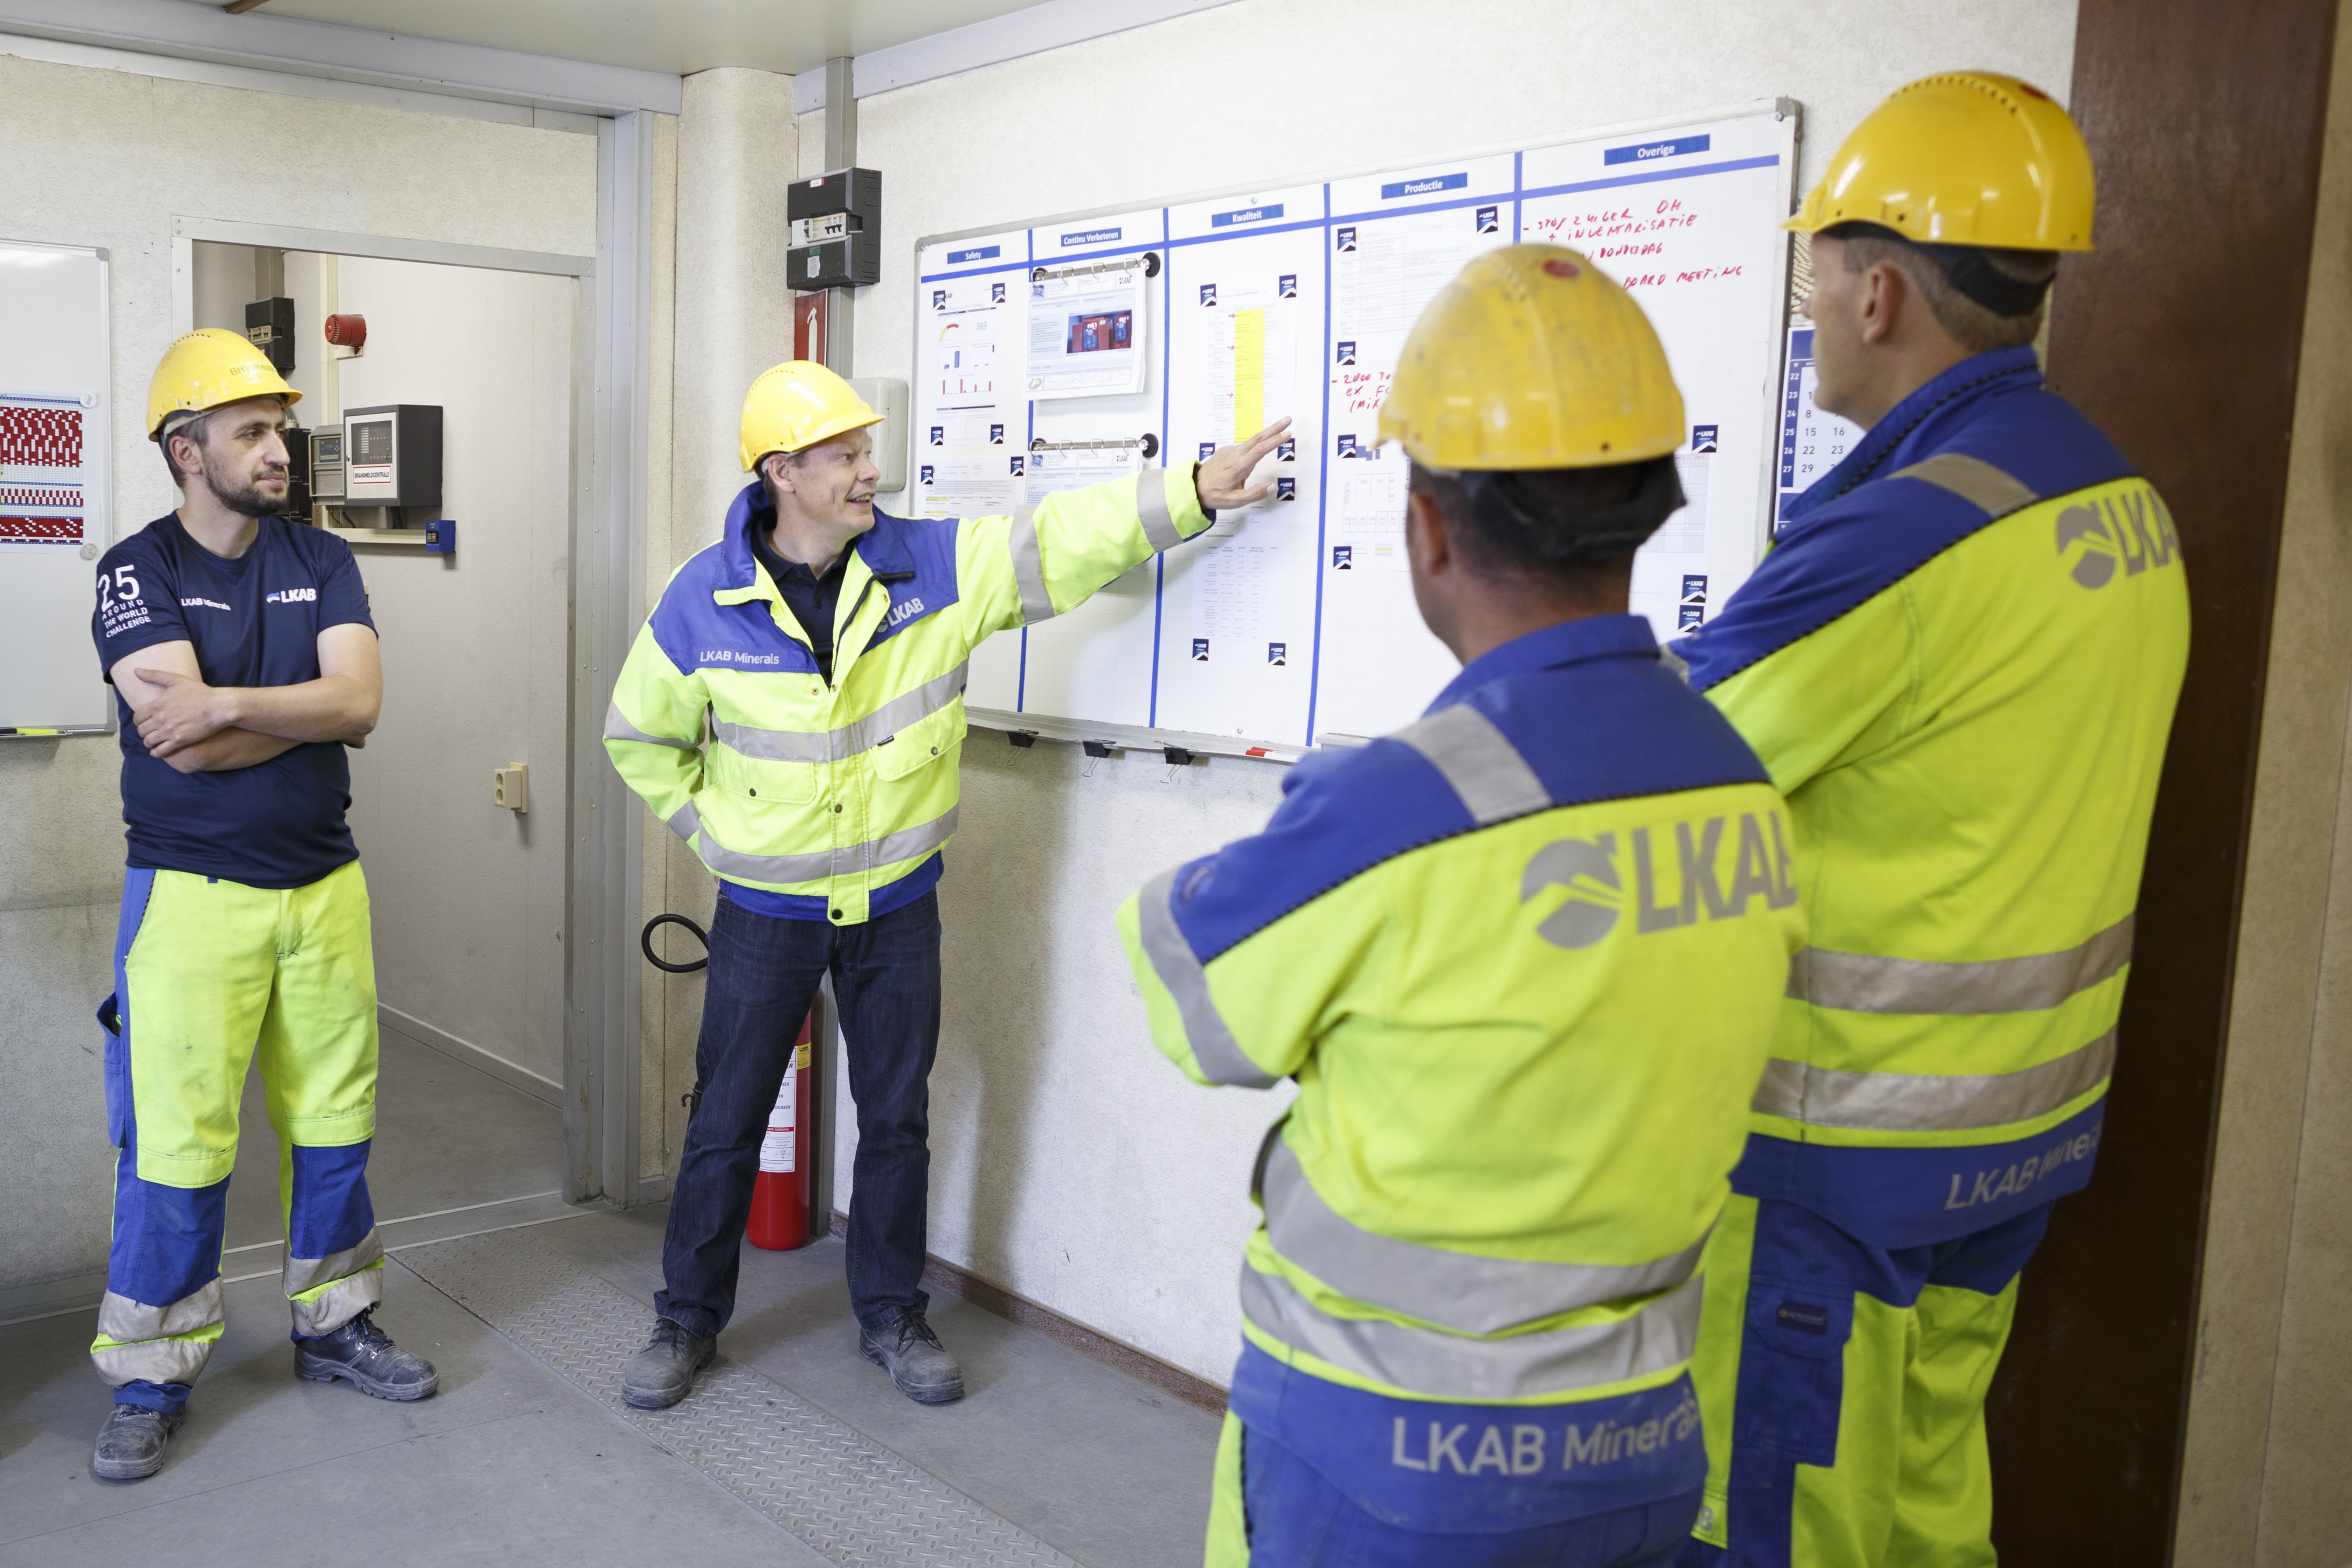 Work at LKAB Minerals employees